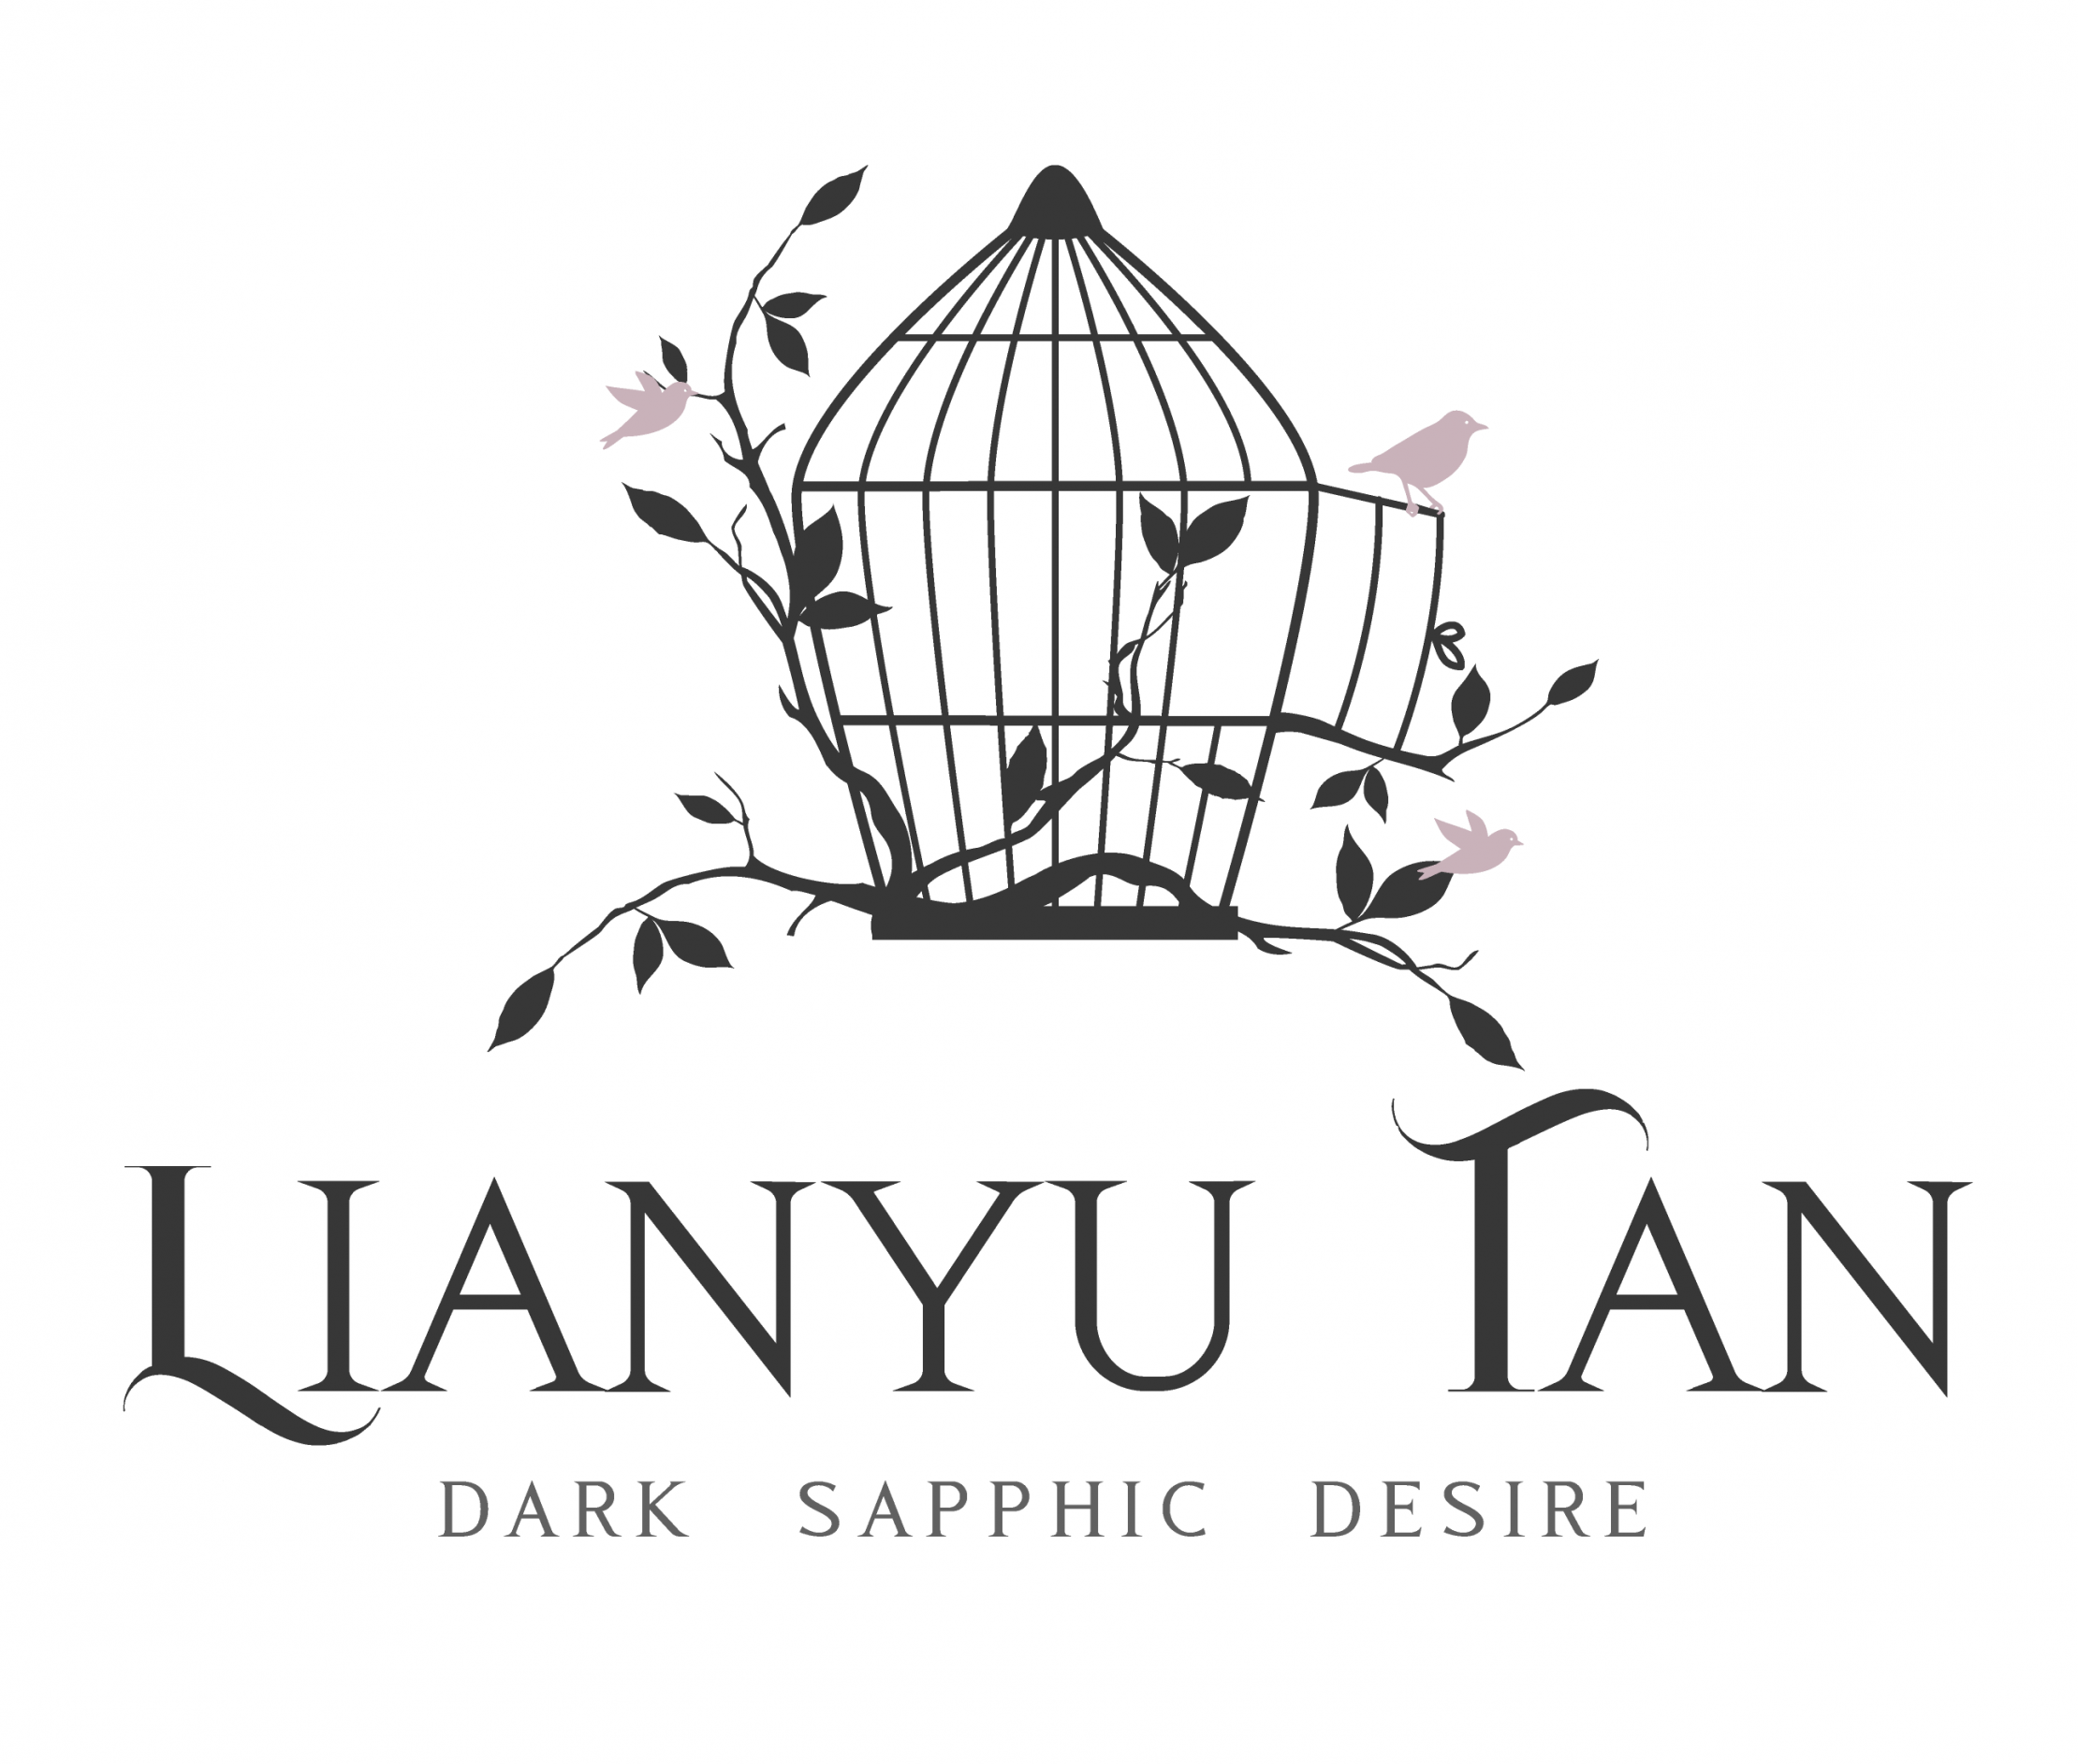 Line drawing of an open bird cage with vine detail and pink birds flying. Text: Lianyu Tan; dark sapphic desire